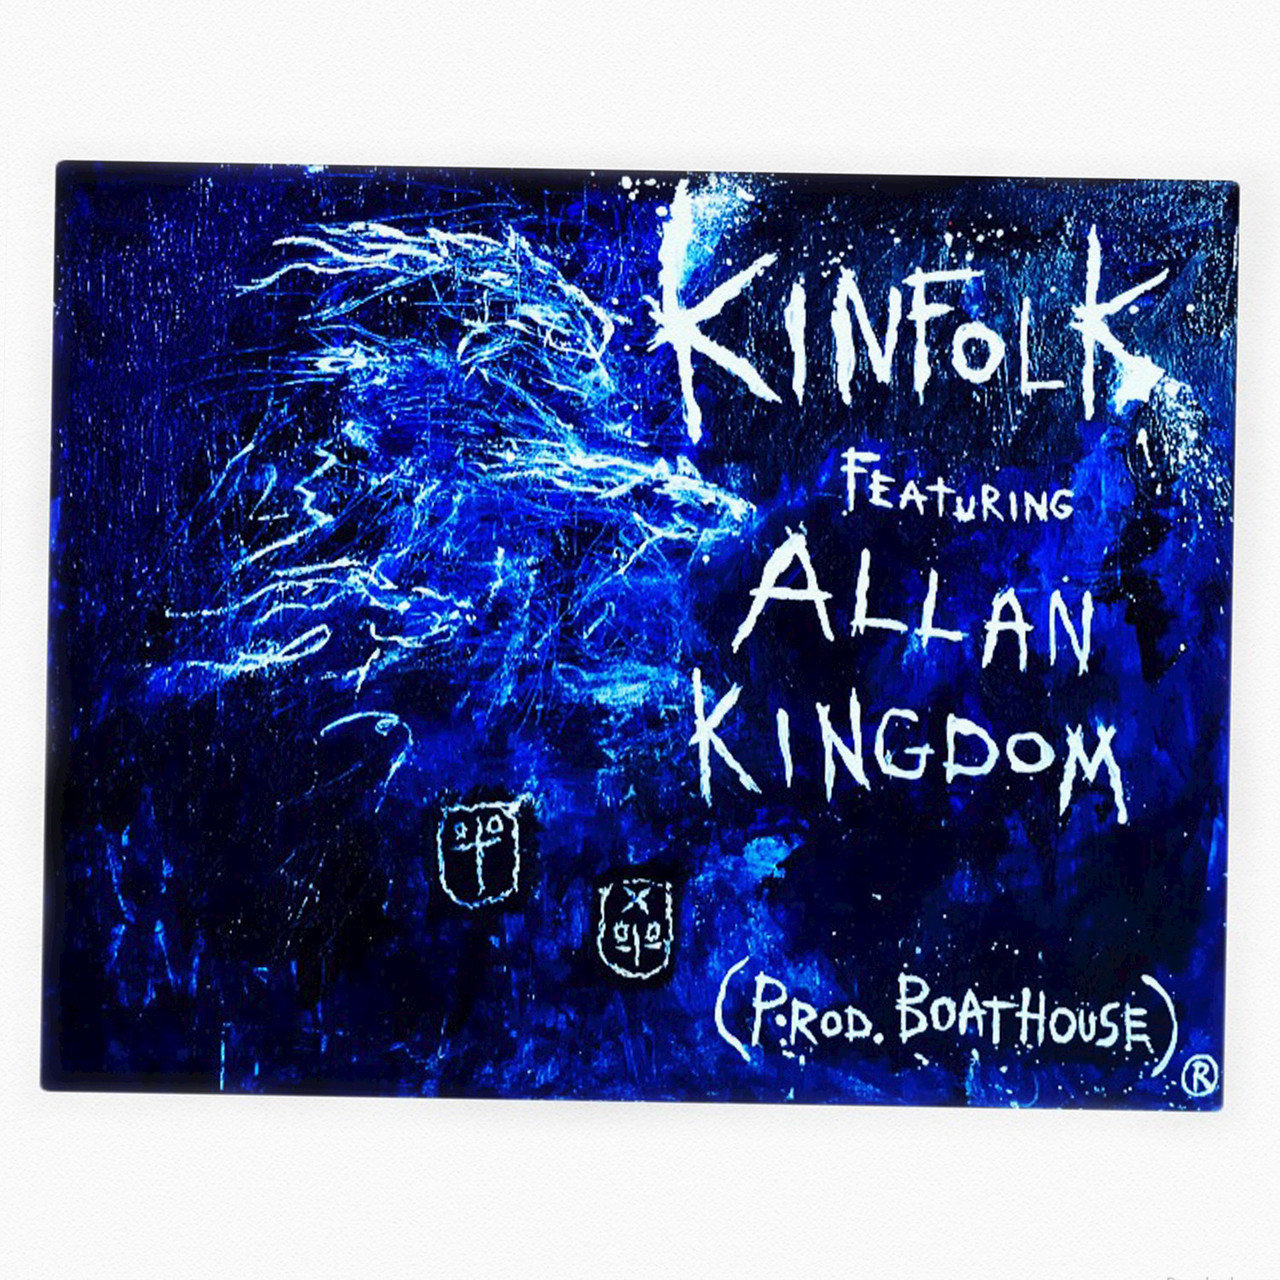 Kinfolk (feat. Allan Kingdom) [Prod. by Boathouse]